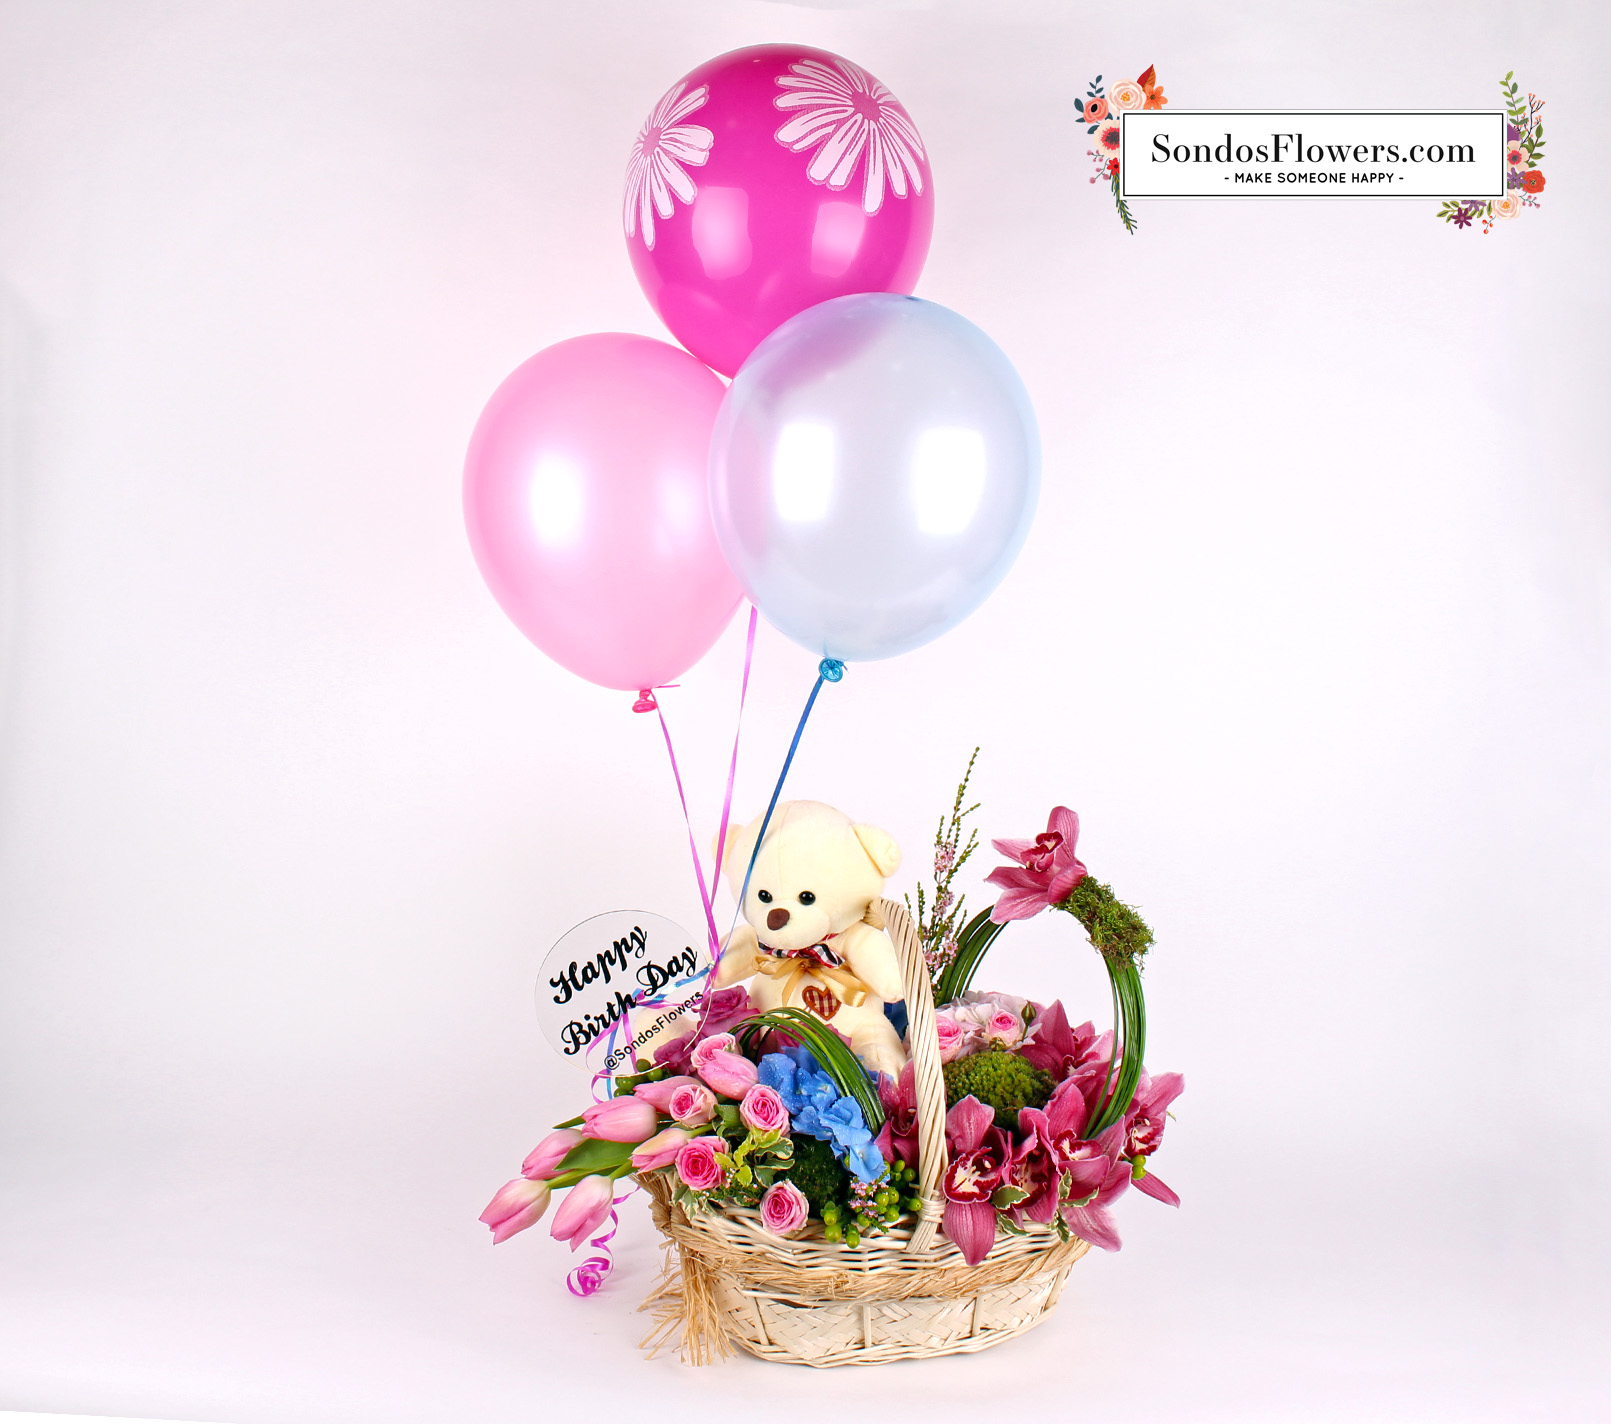 Birthday wish send fresh flowers gifts online kuwait sondos flowers birthday wish izmirmasajfo Choice Image